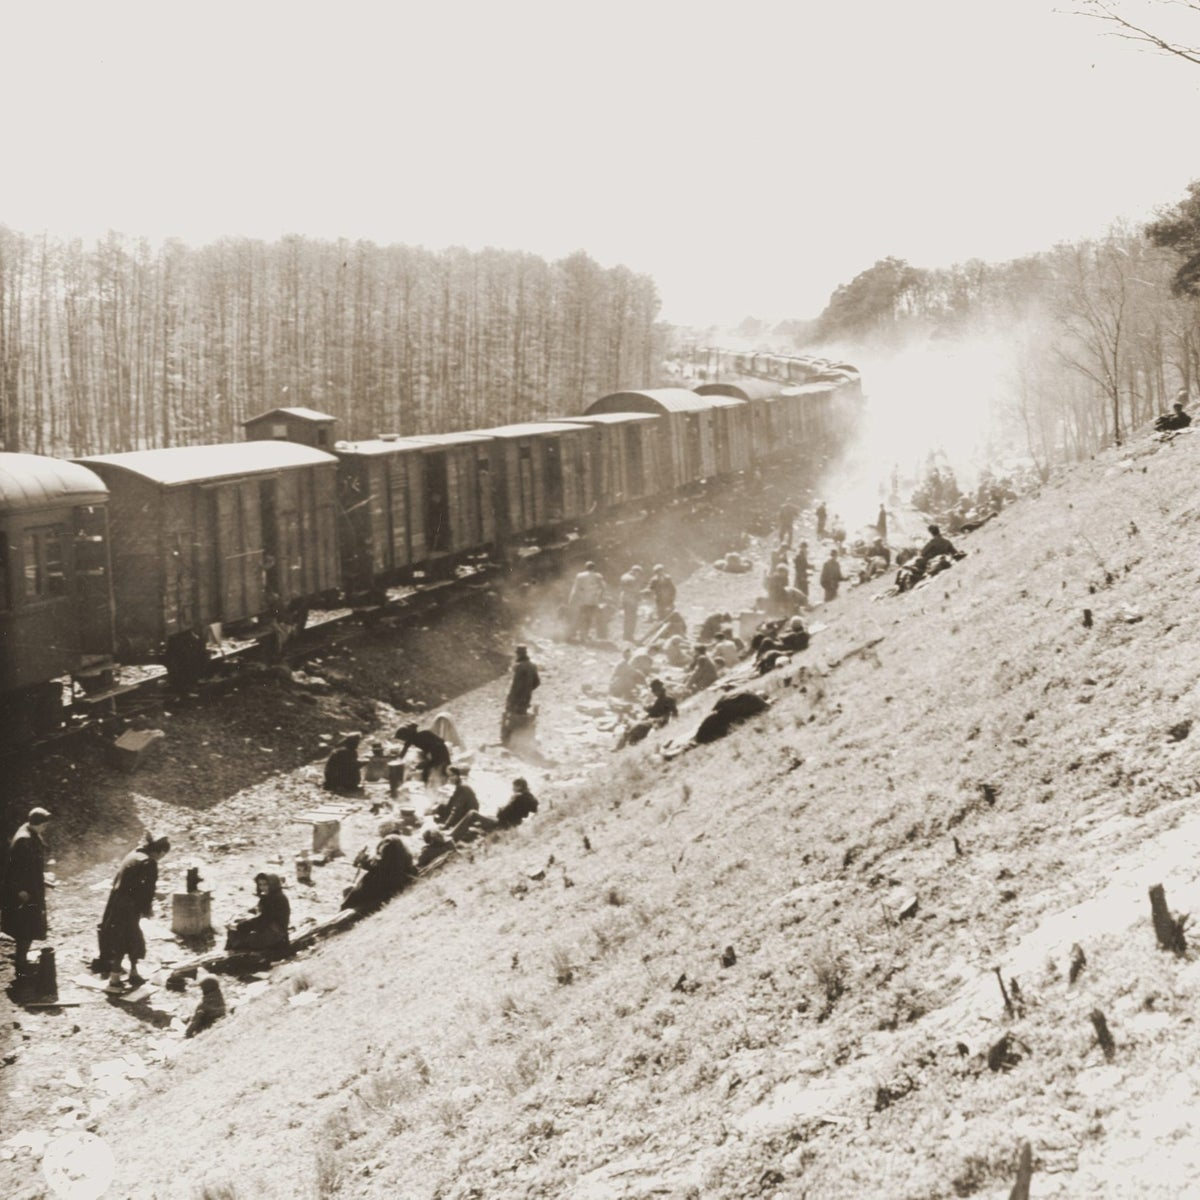 A day after the liberation of the train at Farsleben.